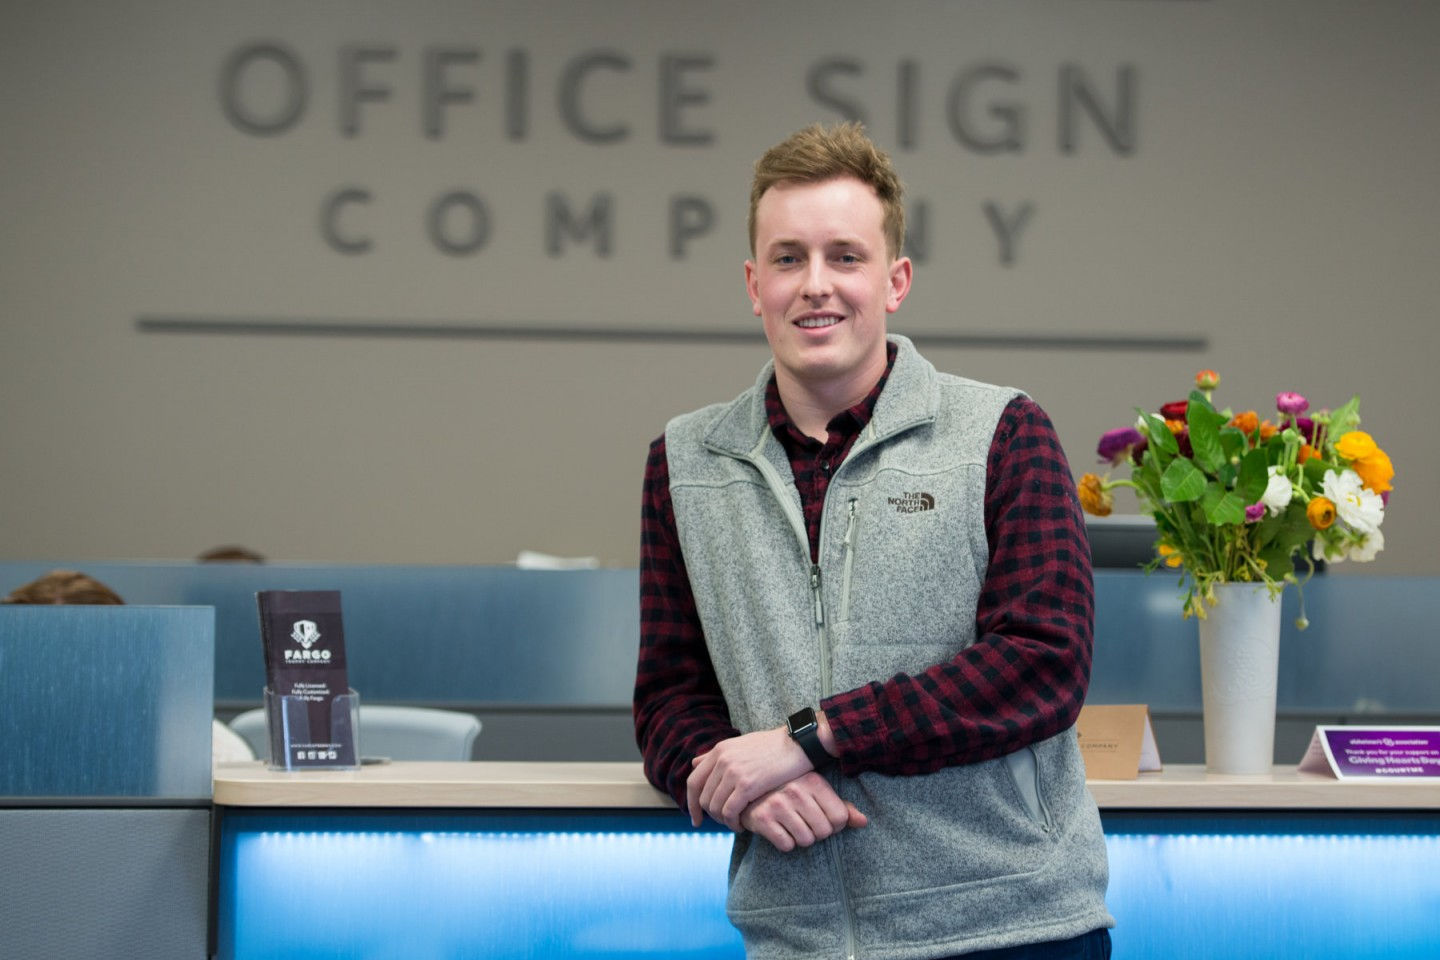 Jack Yakowicz in front of Office Sign Company sign